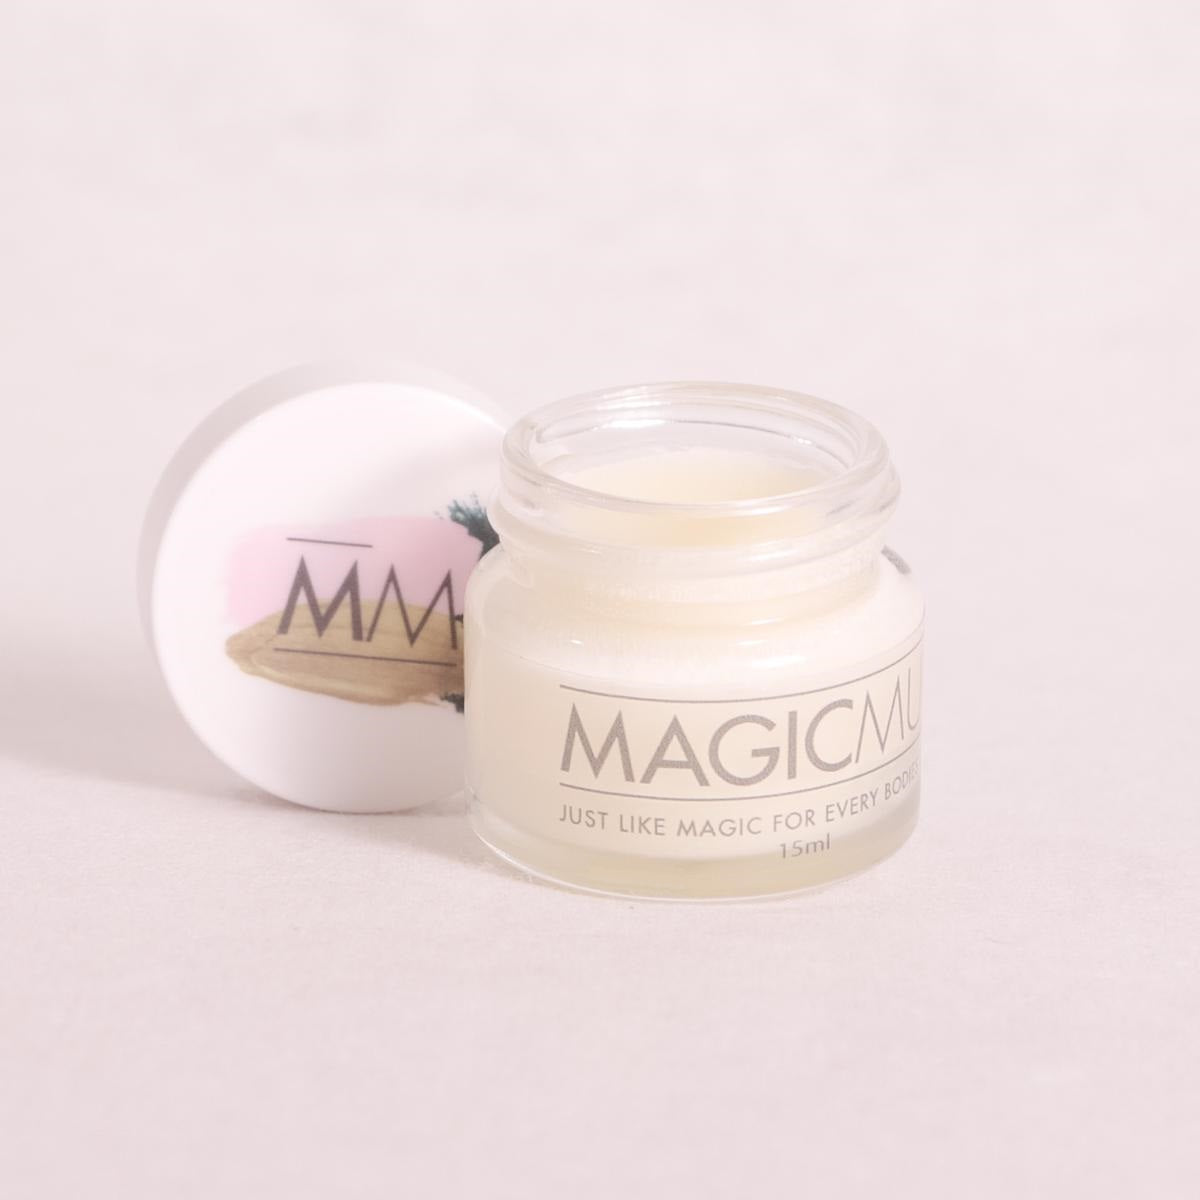 Magicmuk - 15ml - Magicmuk - Throw Some Seeds - Australian gardening gifts and eco products online!